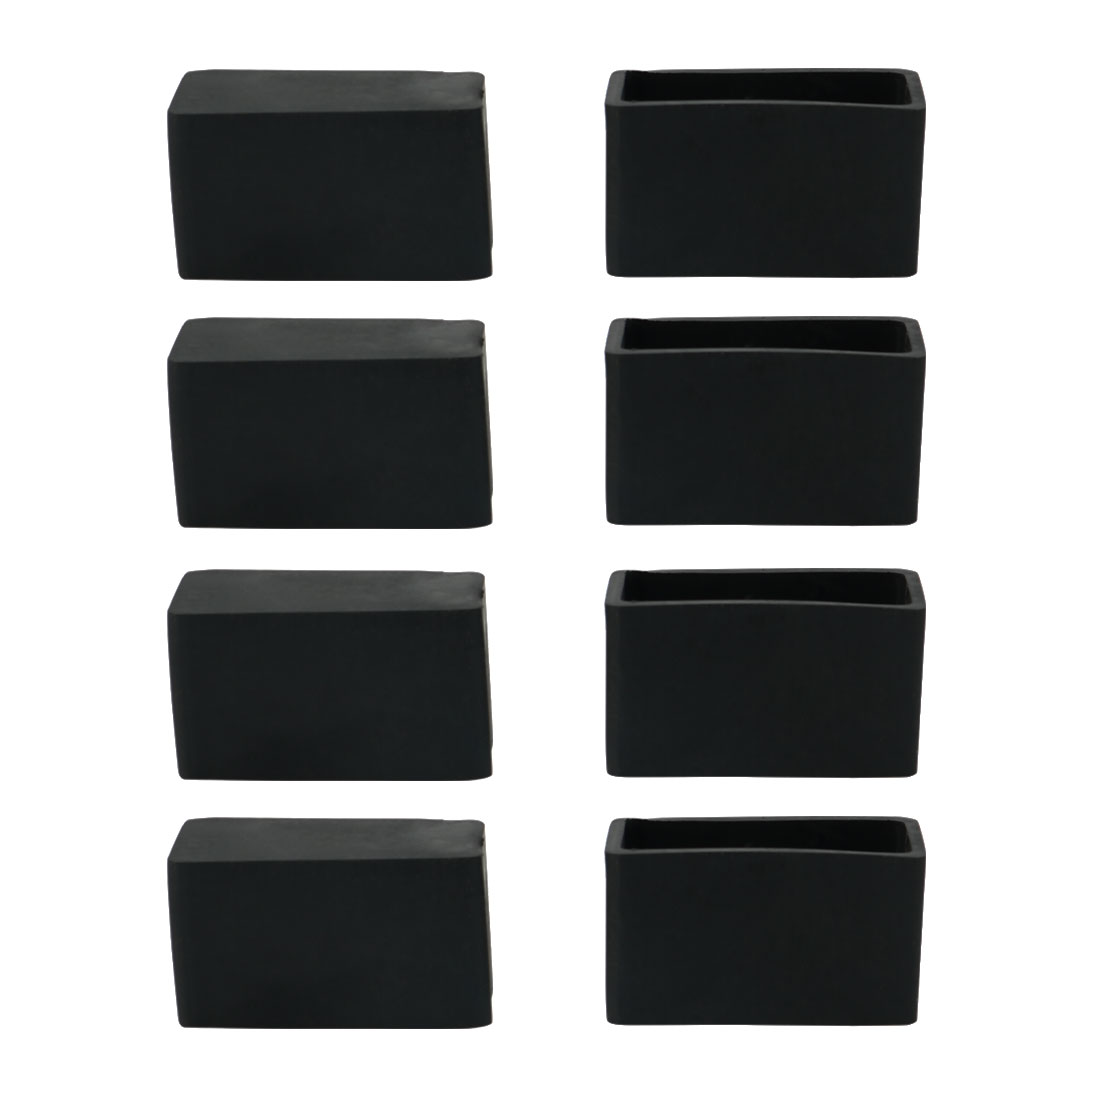 40mm x 20mm Rectangle Shaped Furniture Table Desk Foot Leg Rubber End Cap Cover Black 8pcs